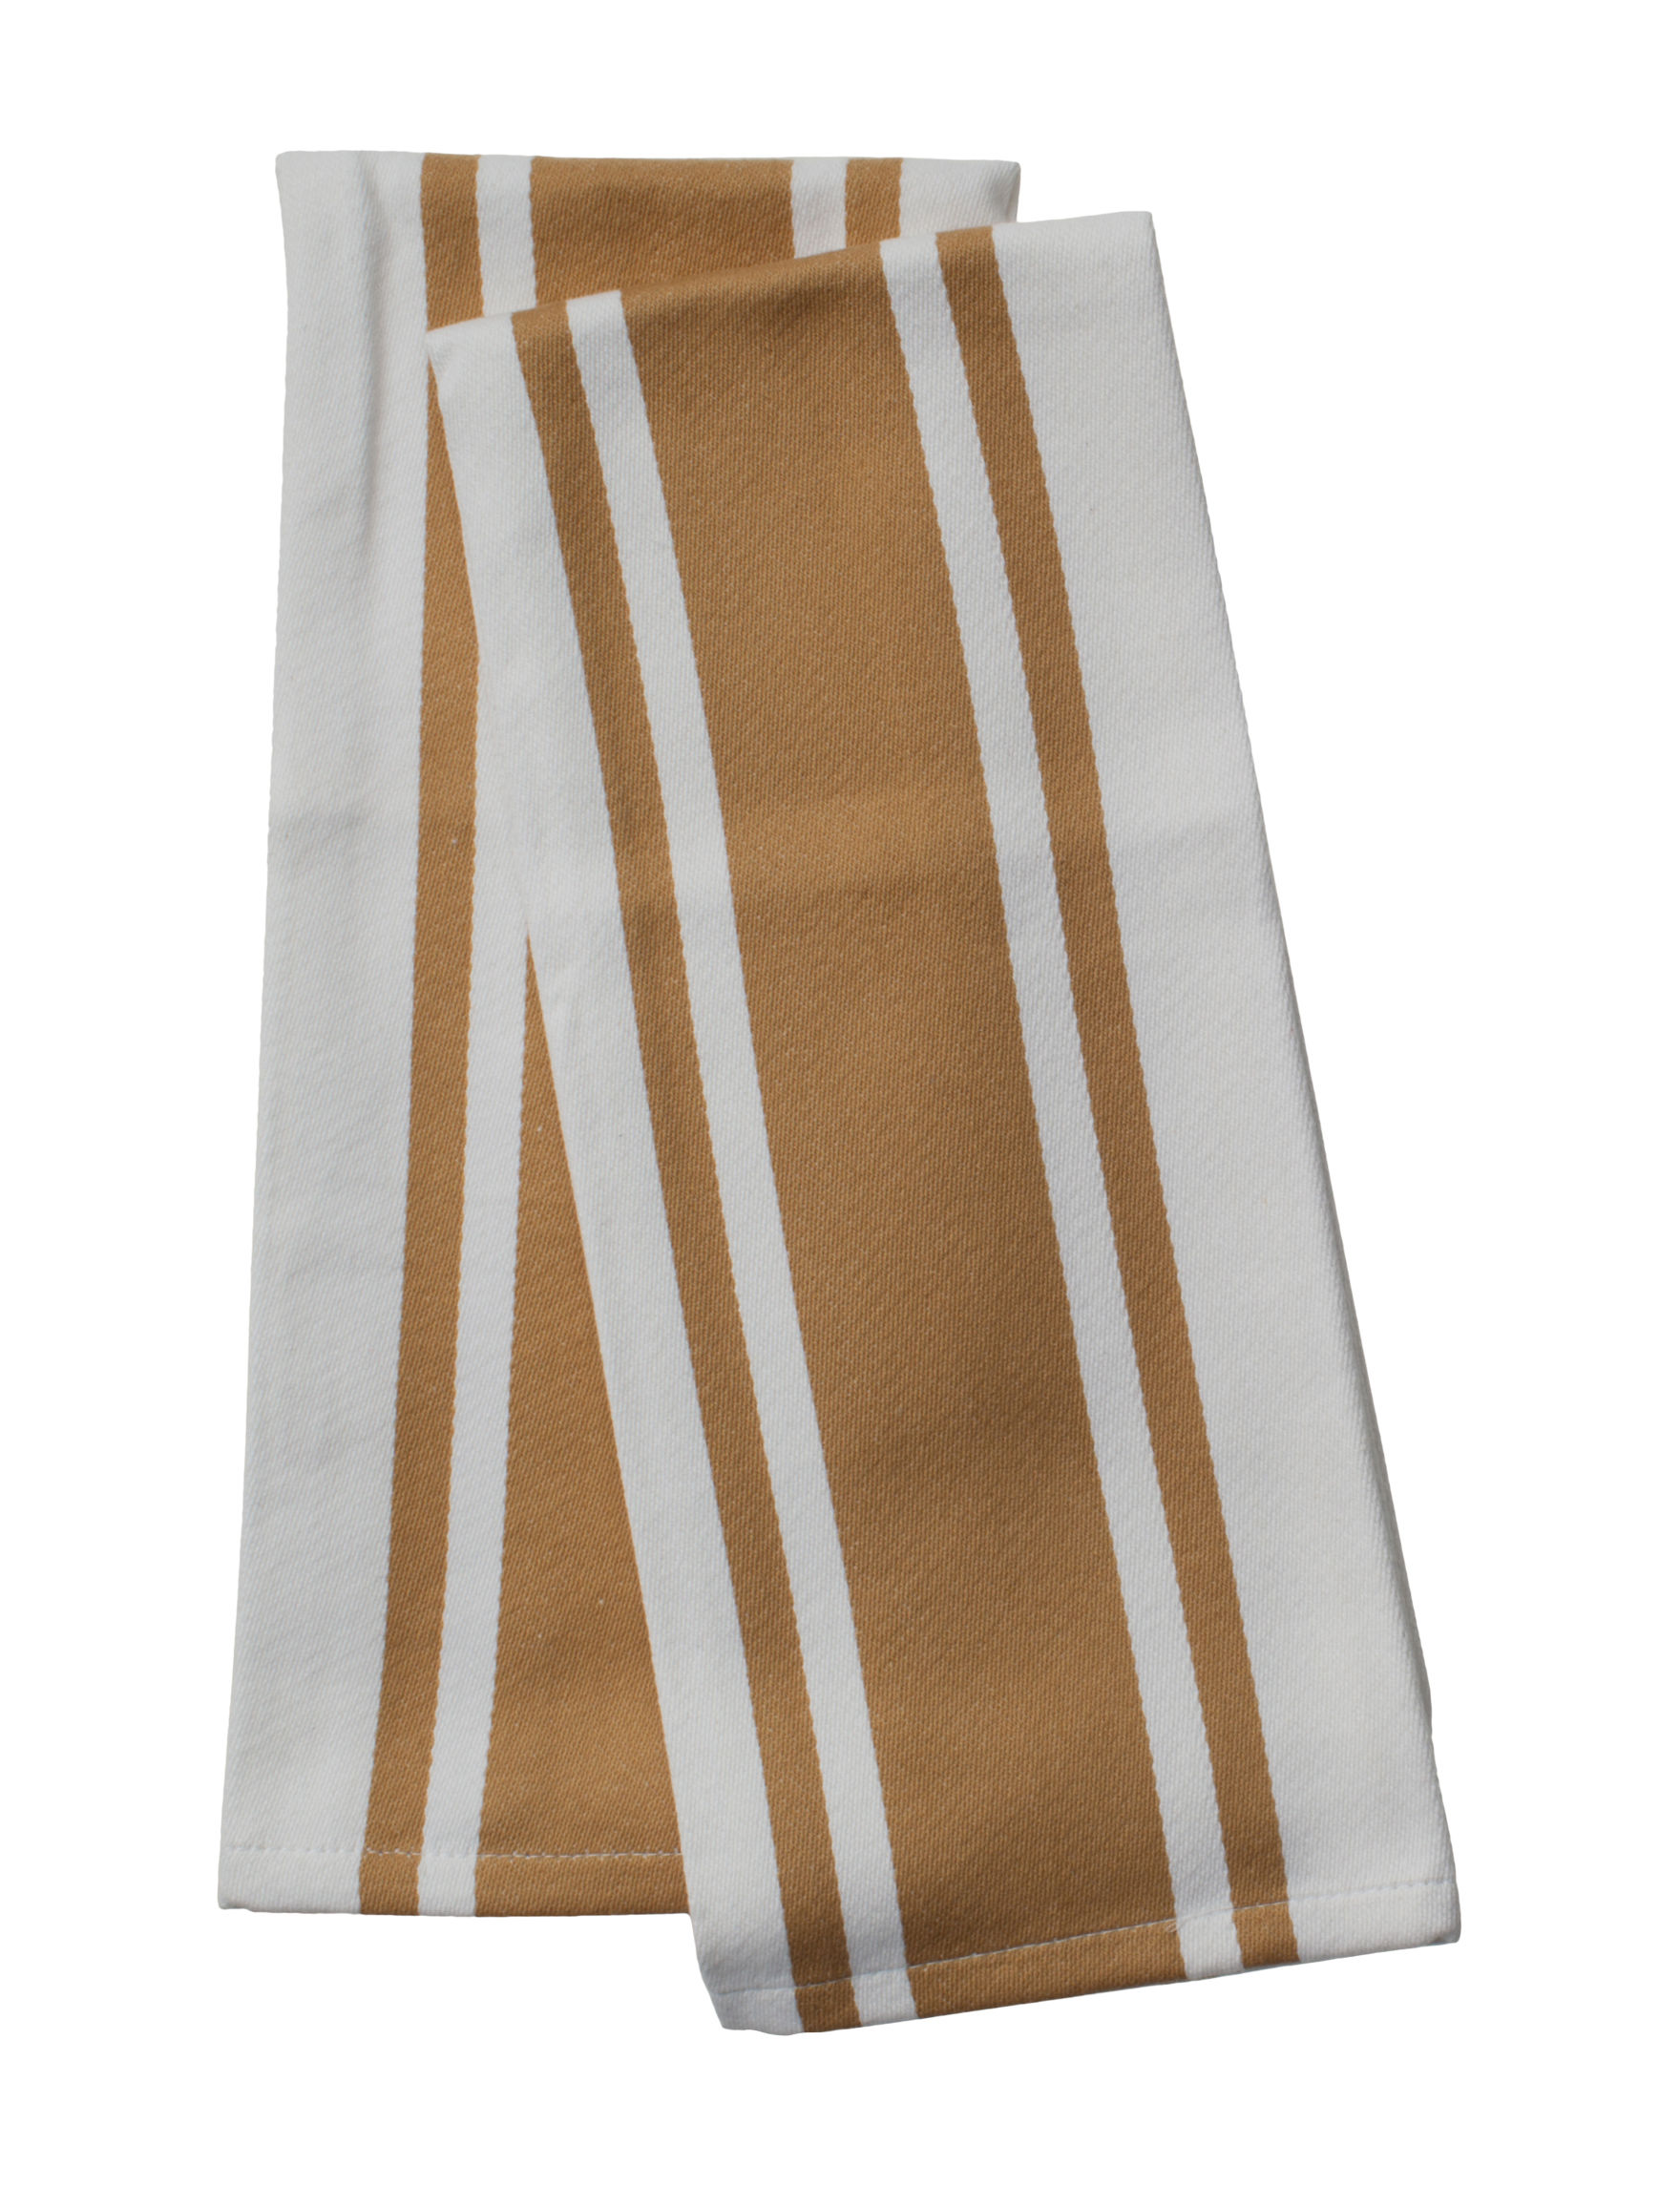 Pantry Brown / White Dish Towels Kitchen Linens